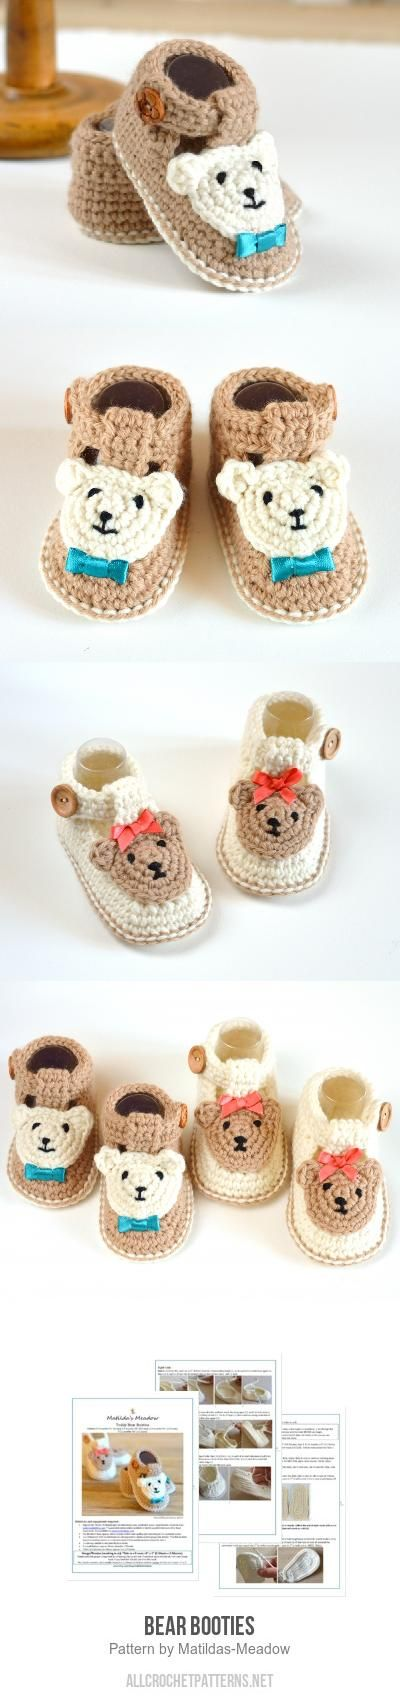 Bear Booties crochet pattern